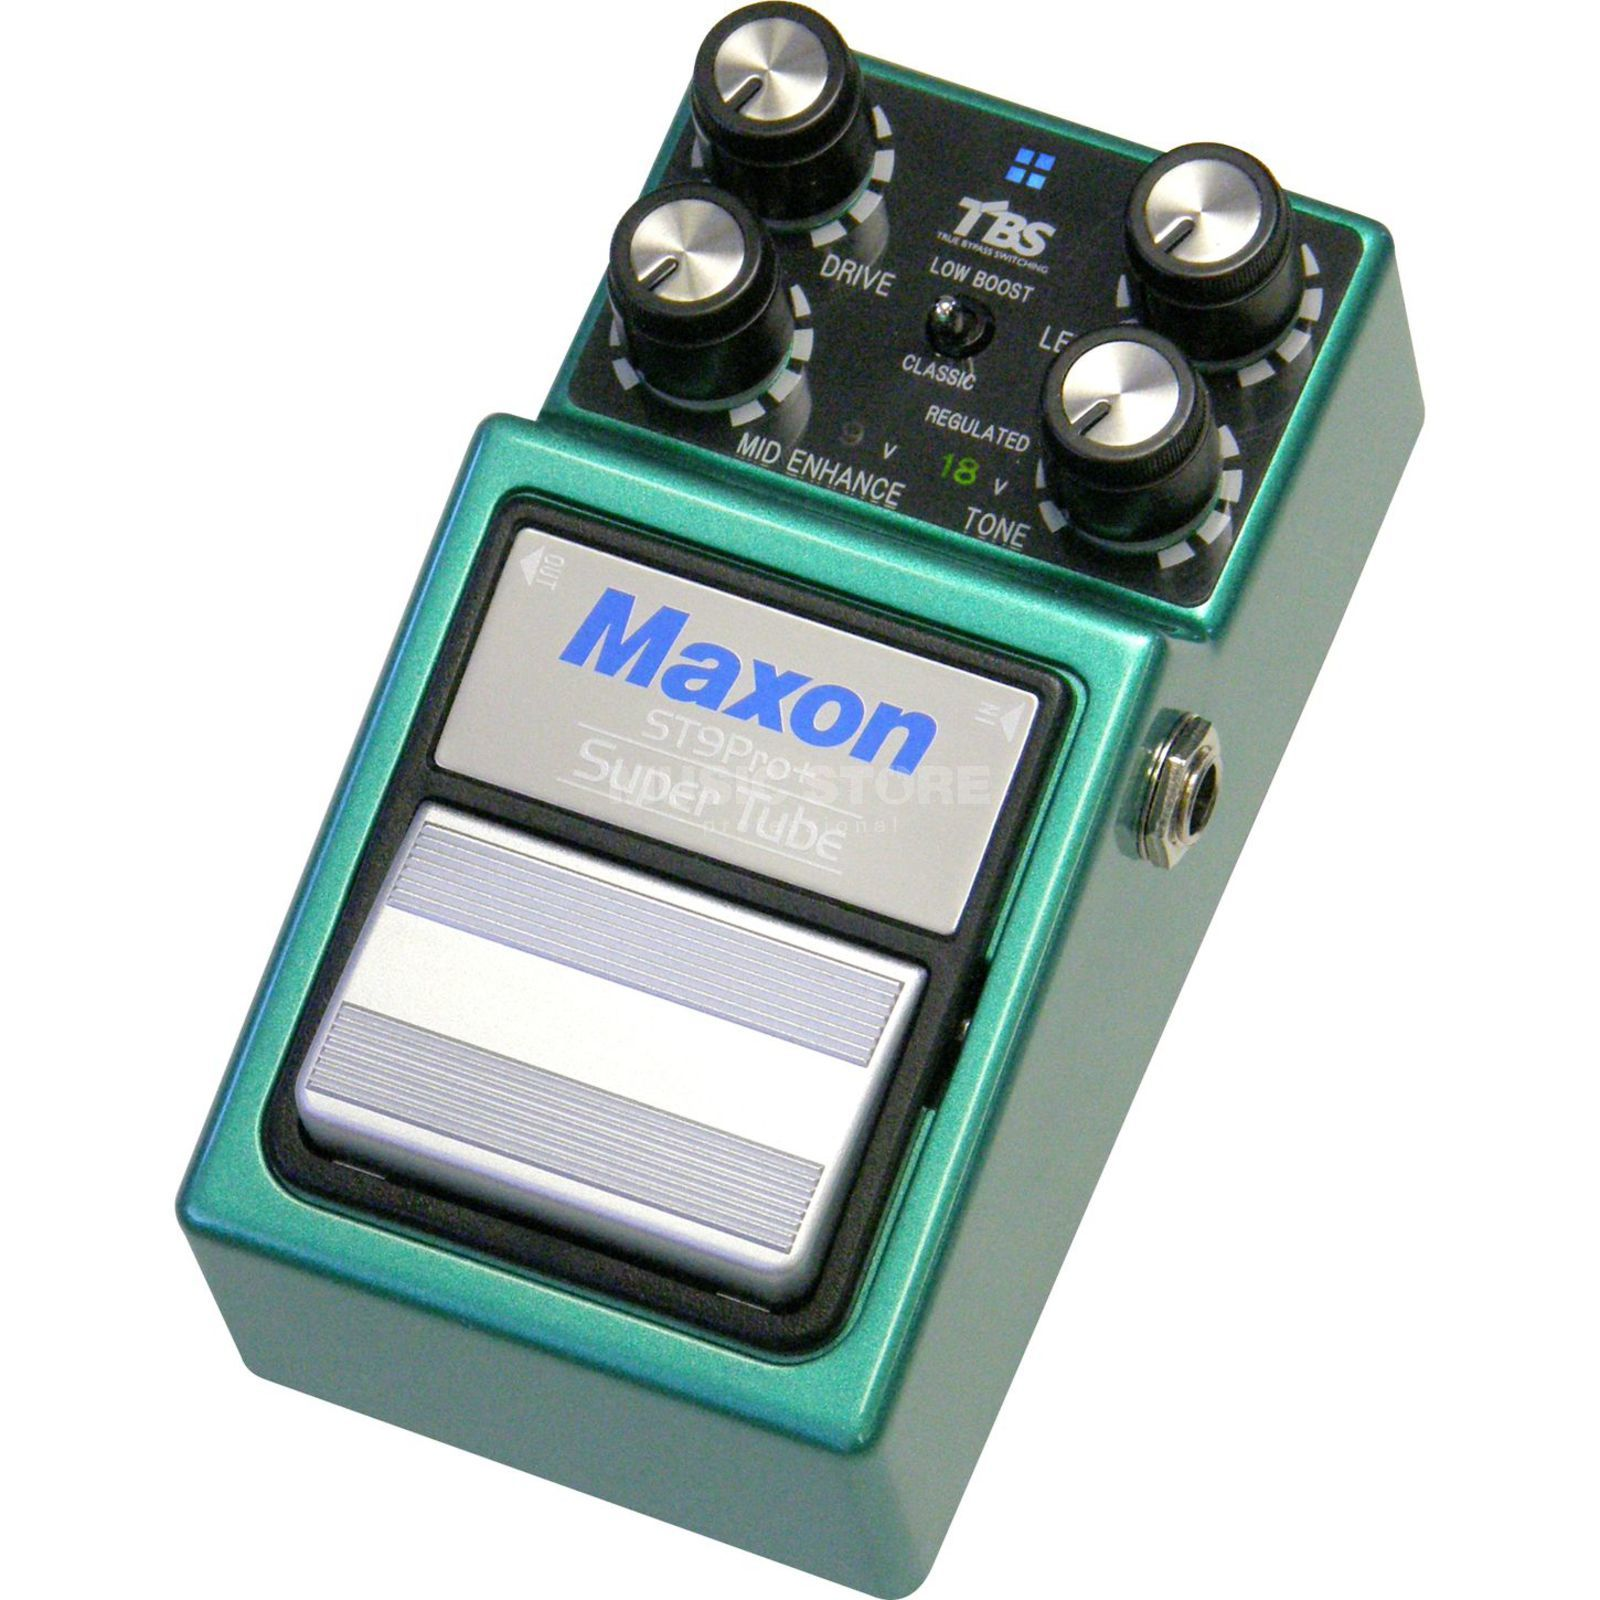 Maxon ST-9 Pro+ Super Tube Distortio n Guitar Effects Pedal   Produktbillede